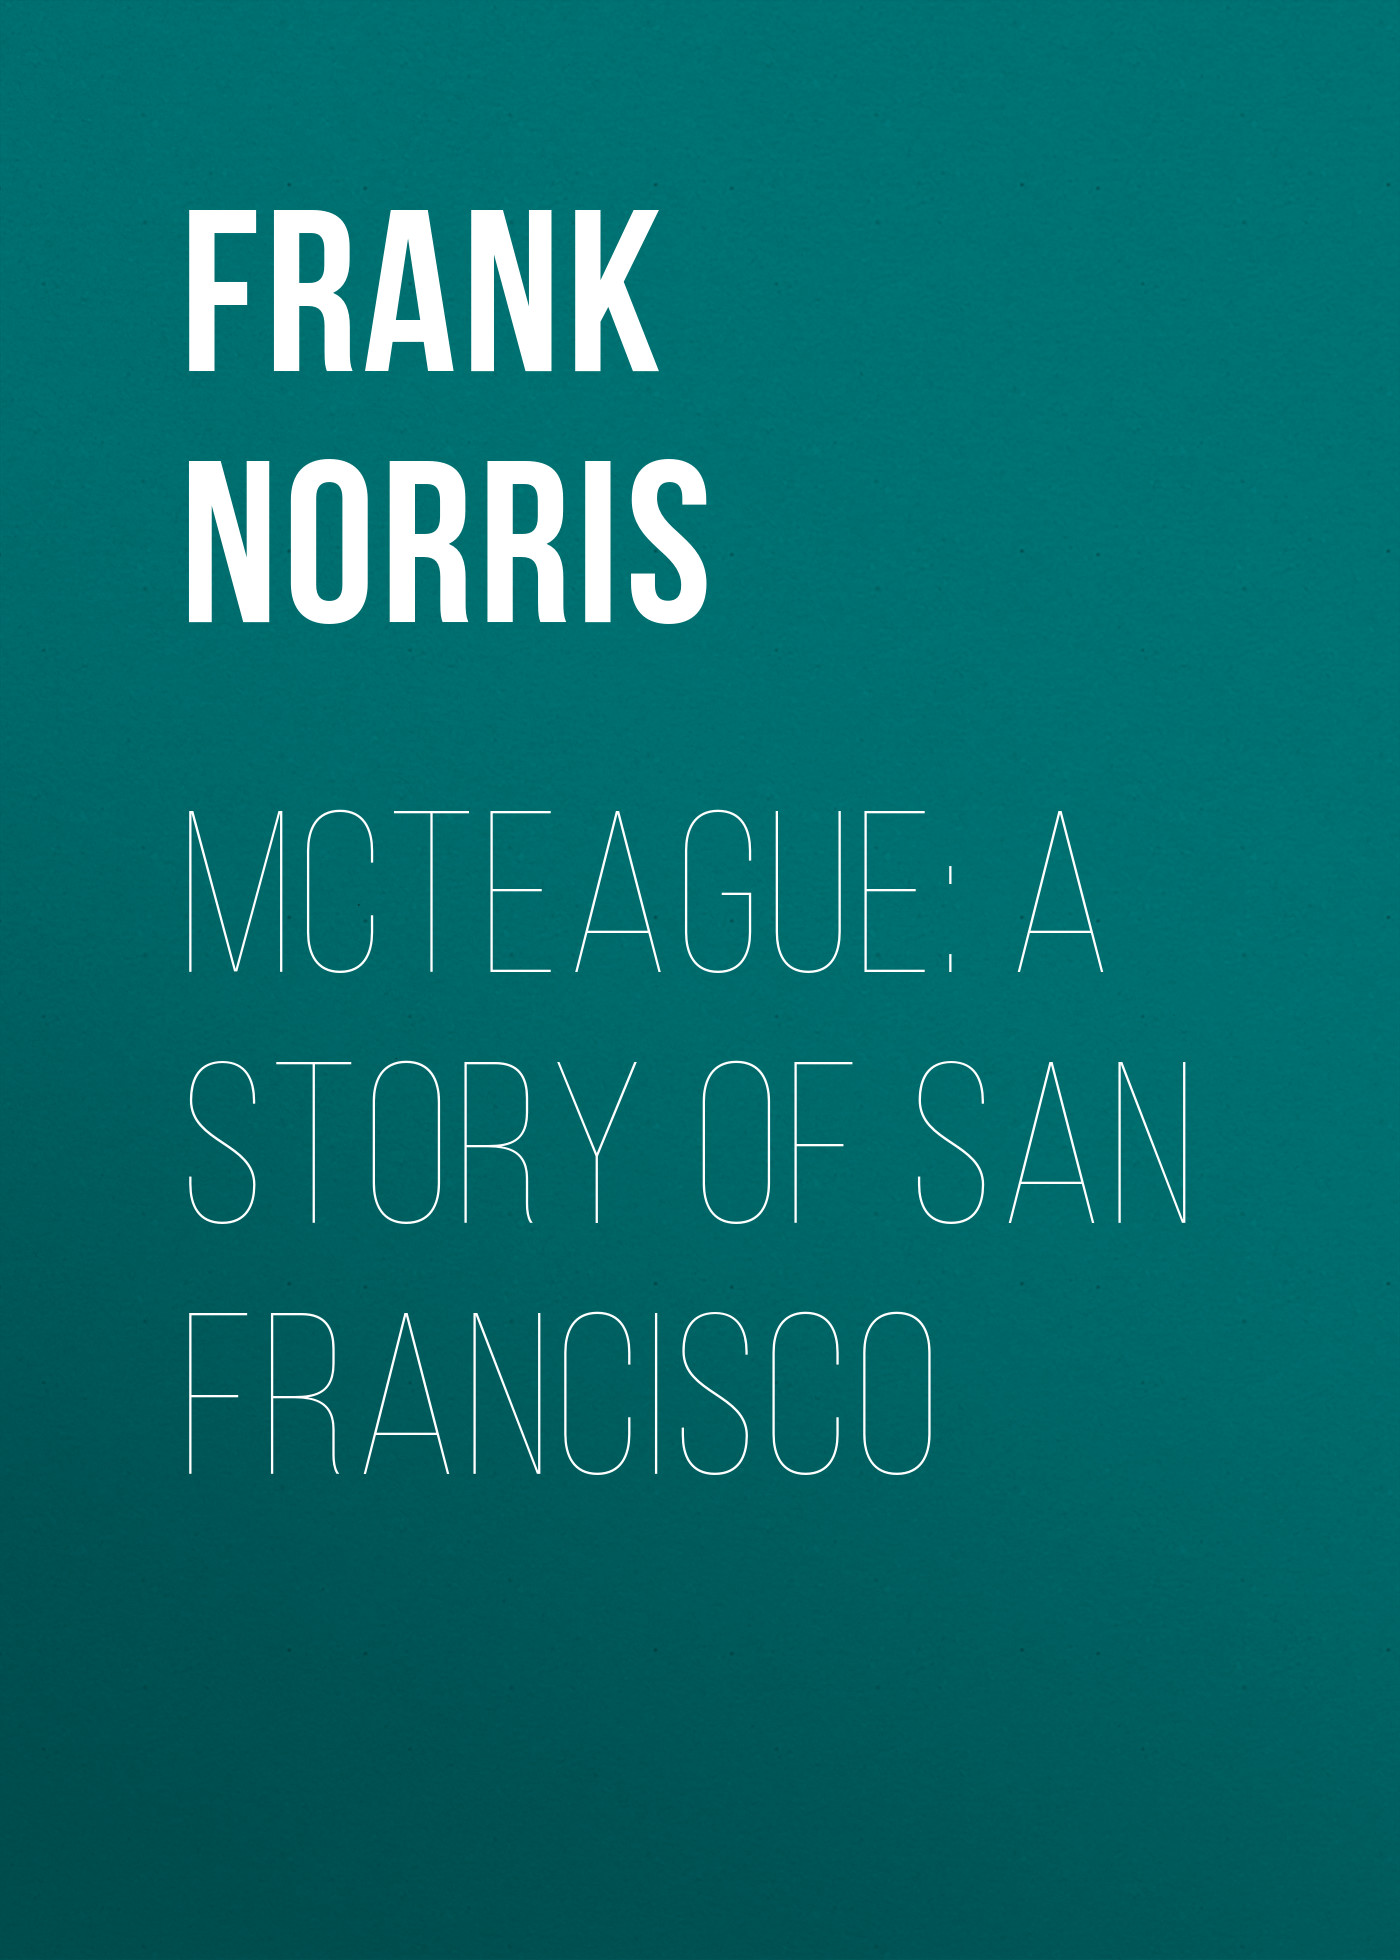 Frank Norris McTeague: A Story of San Francisco san francisco calif dept of public health annual report san francisco department of public health 1885